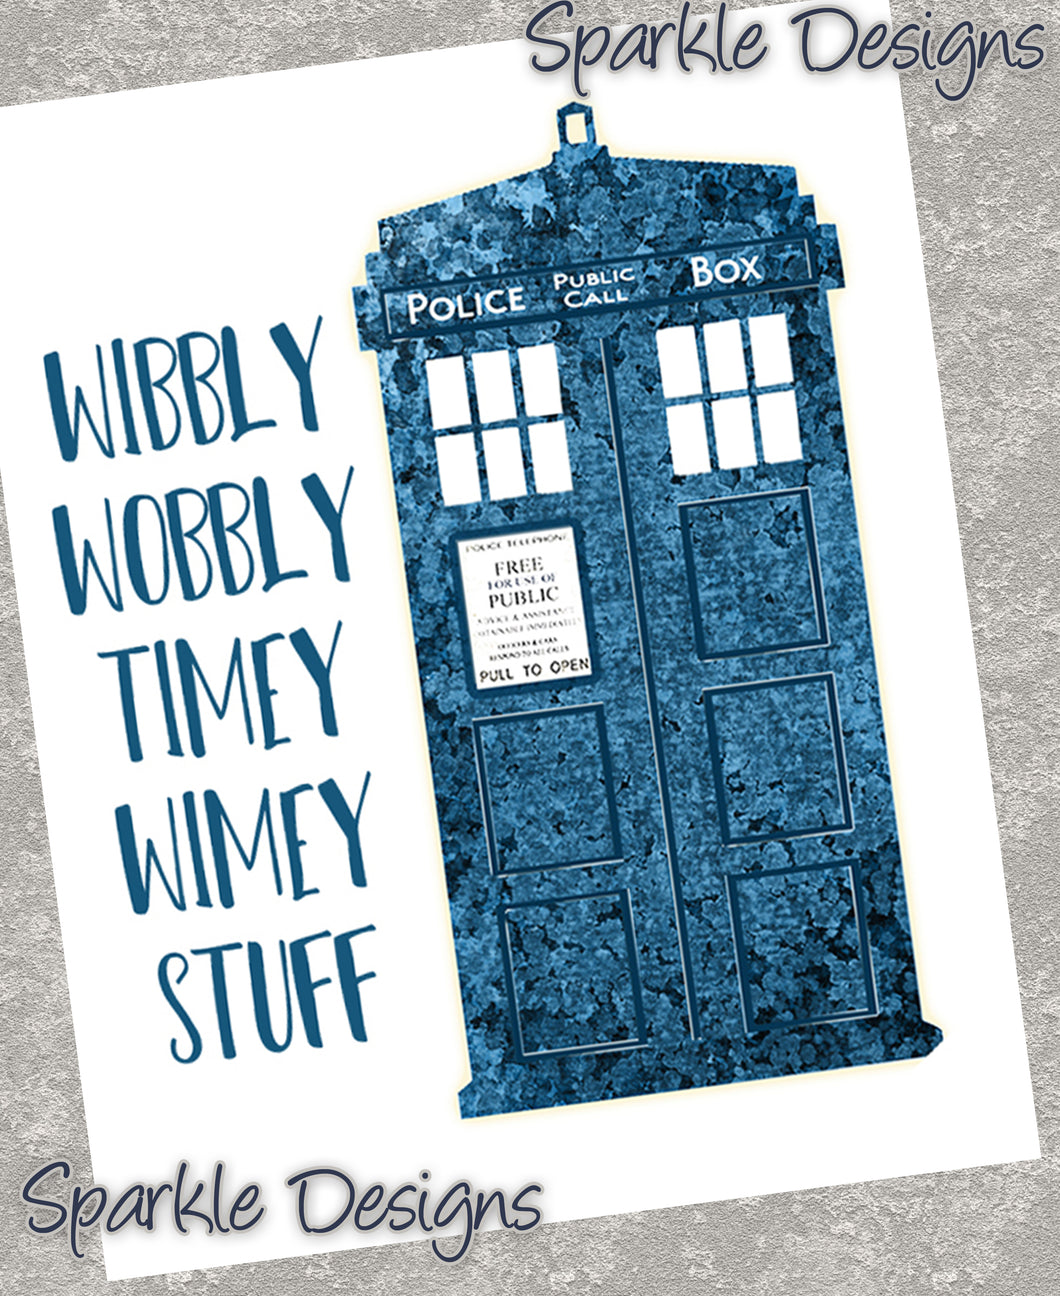 Wibbly wobbly timey wimey stuff with Tardis - Doctor Who 245 Art Print